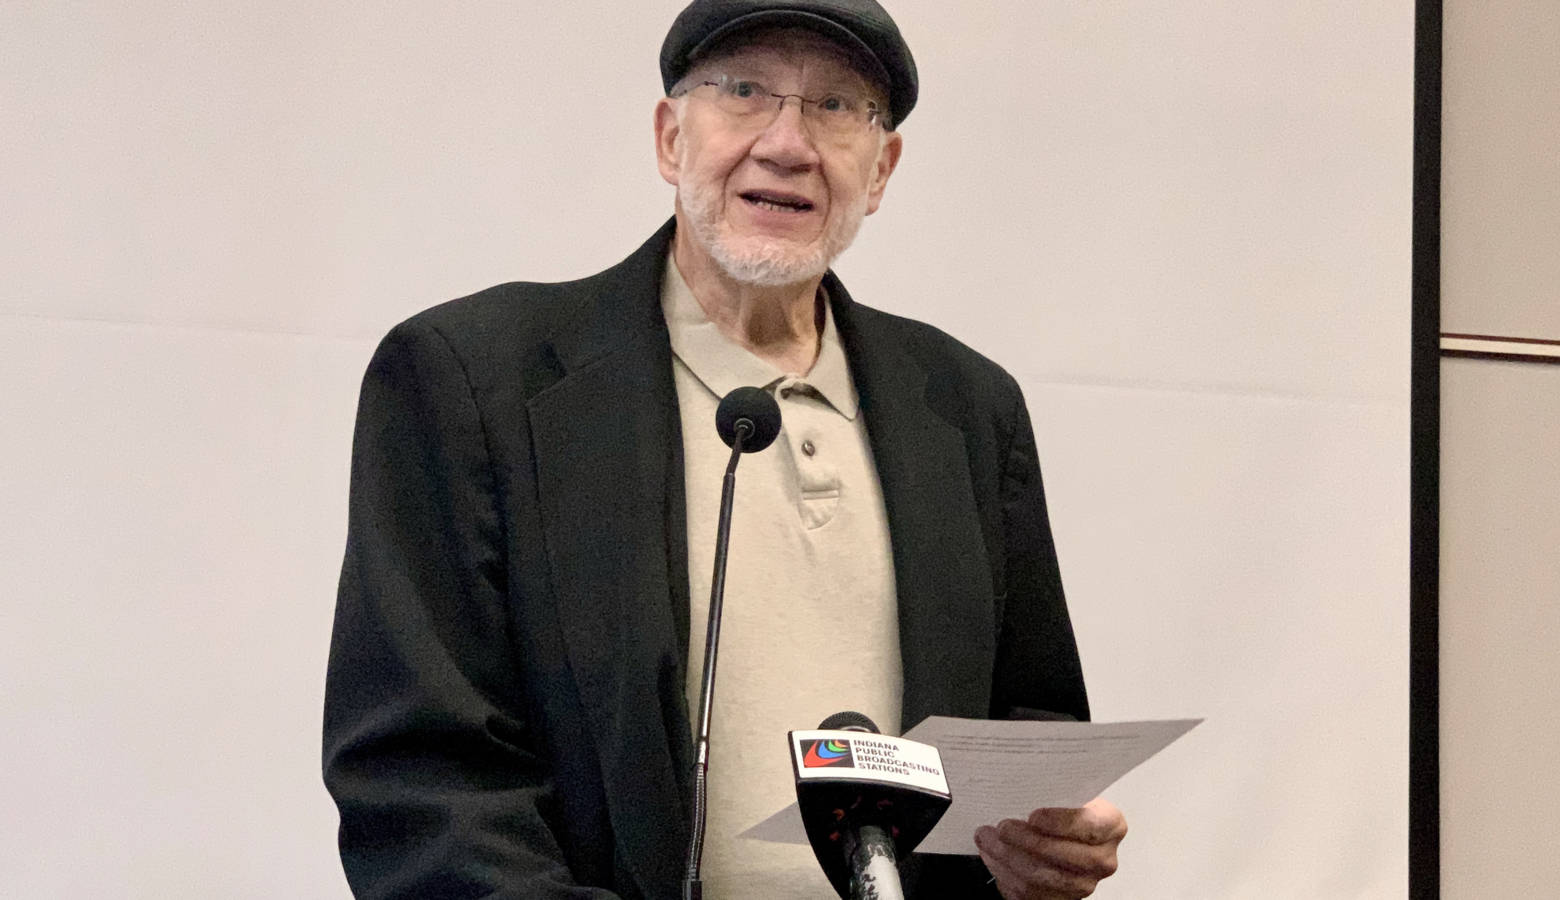 Anderson University Professor Emeritus John Aukerman told the BMV people shouldn't be allowed to change the gender on their driver's license. (Brandon Smith/IPB News)